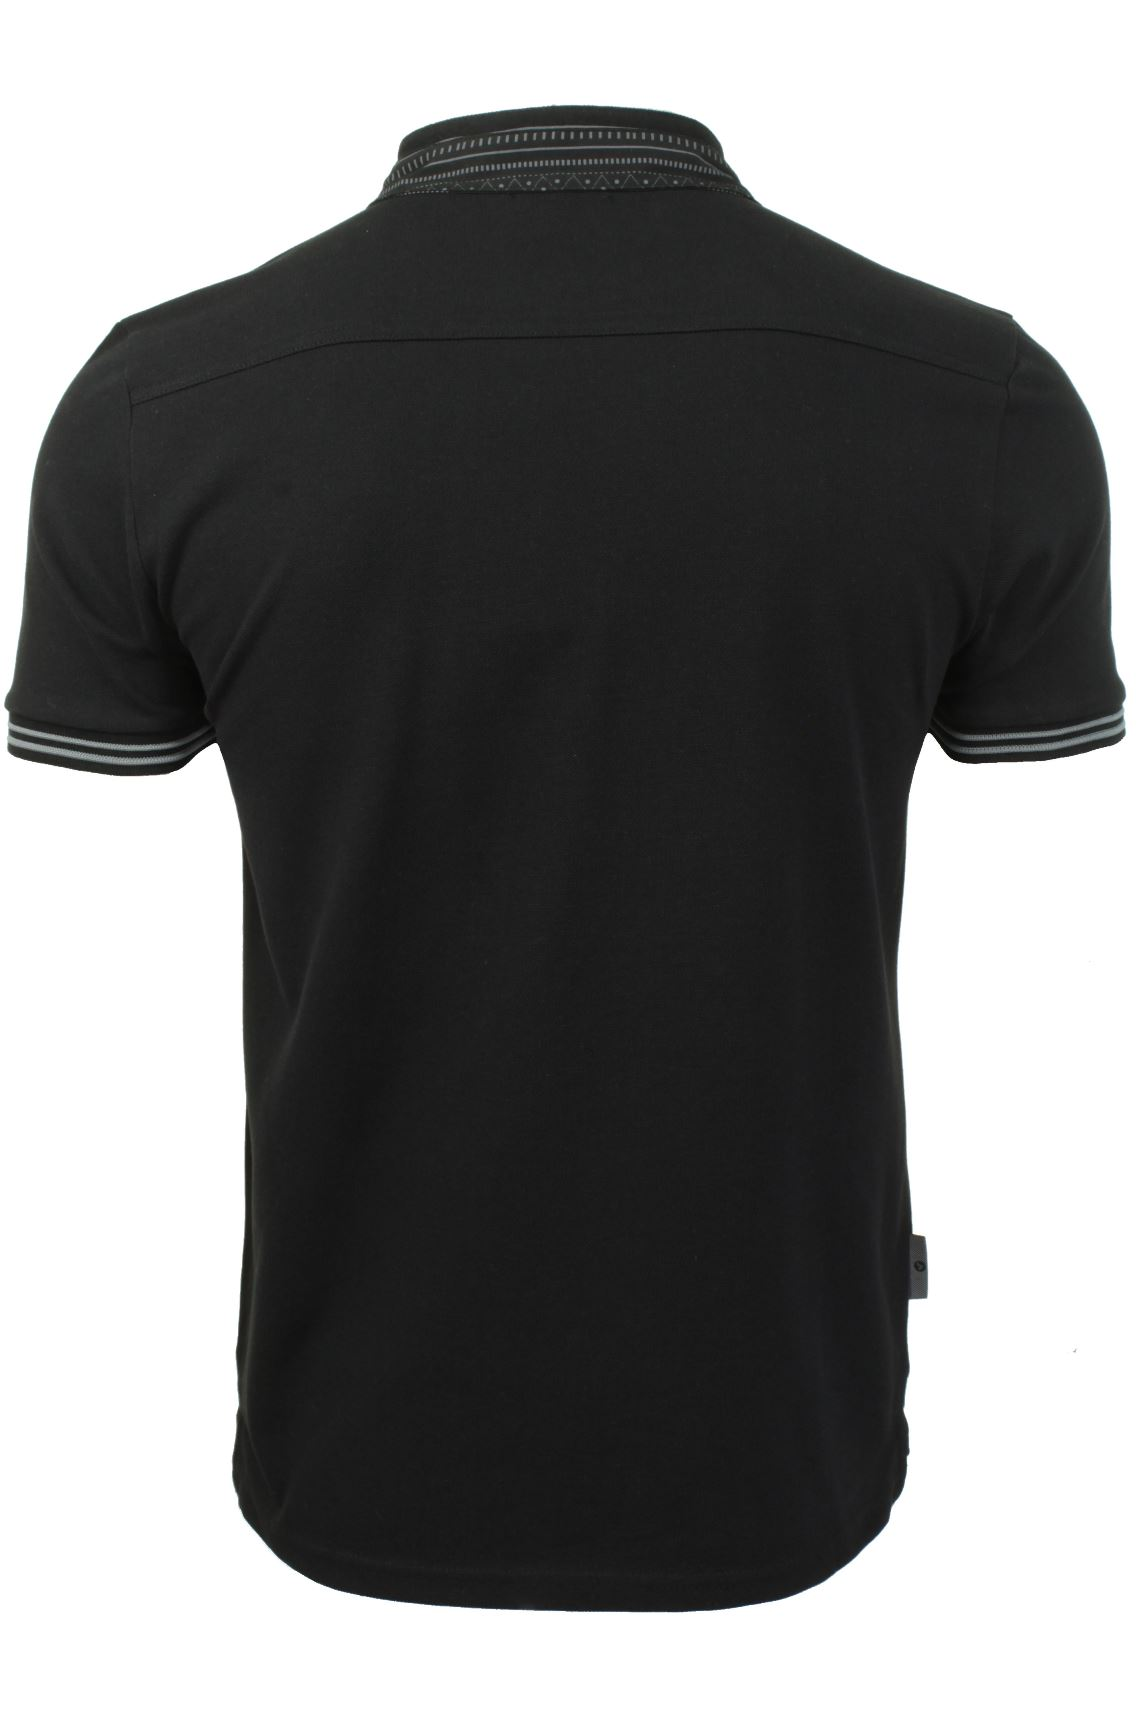 Mens-Polo-T-Shirt-by-Voi-Jeans-039-Winters-039 thumbnail 5